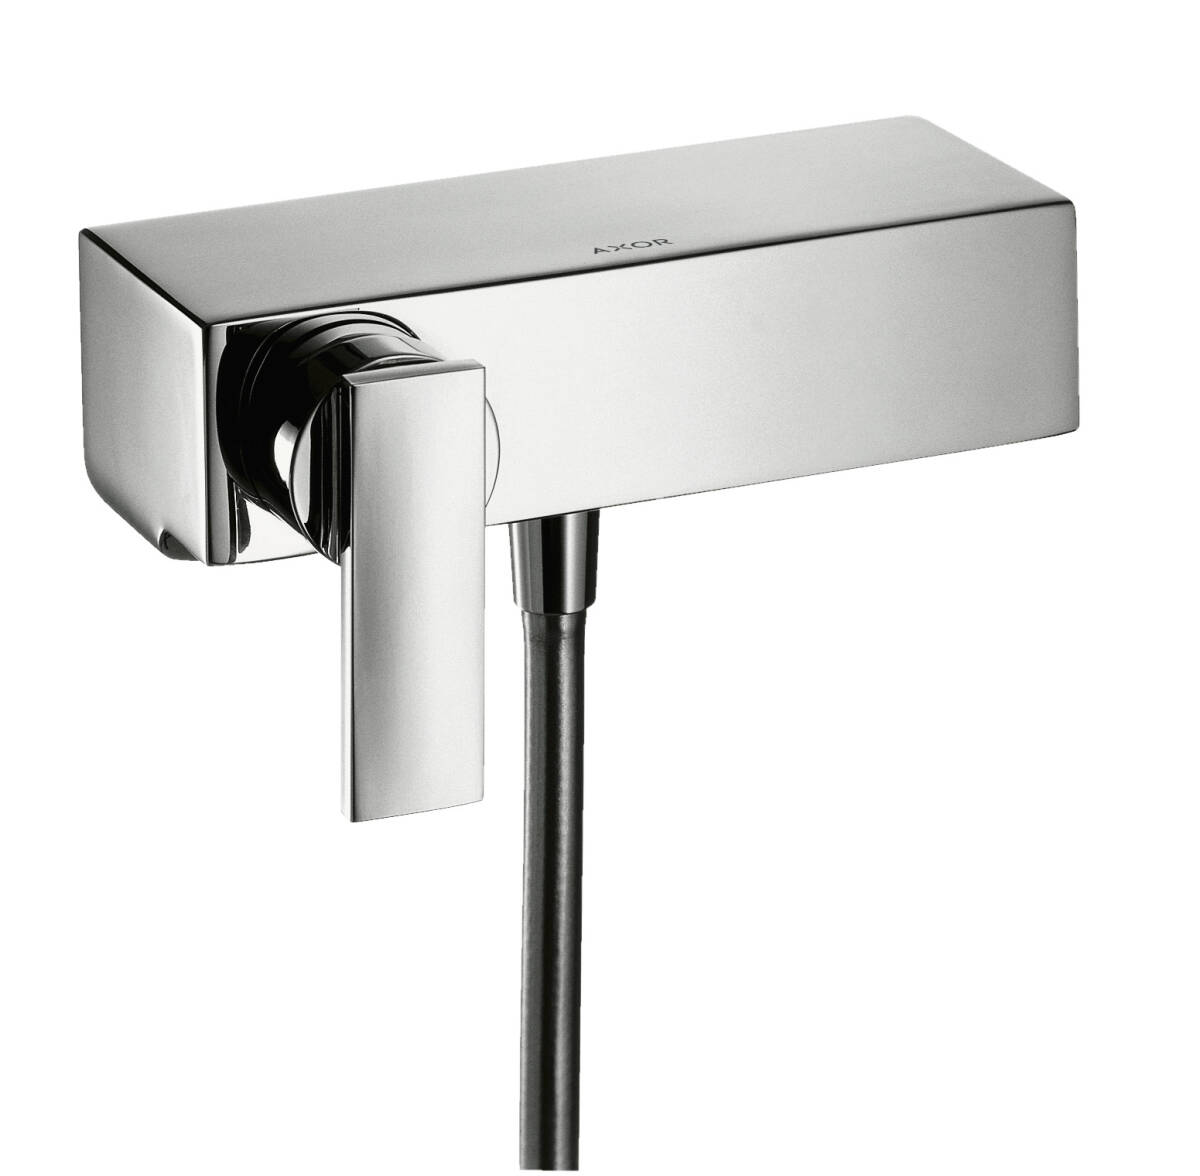 Single lever shower mixer for exposed installation with lever handle, Chrome, 39600000